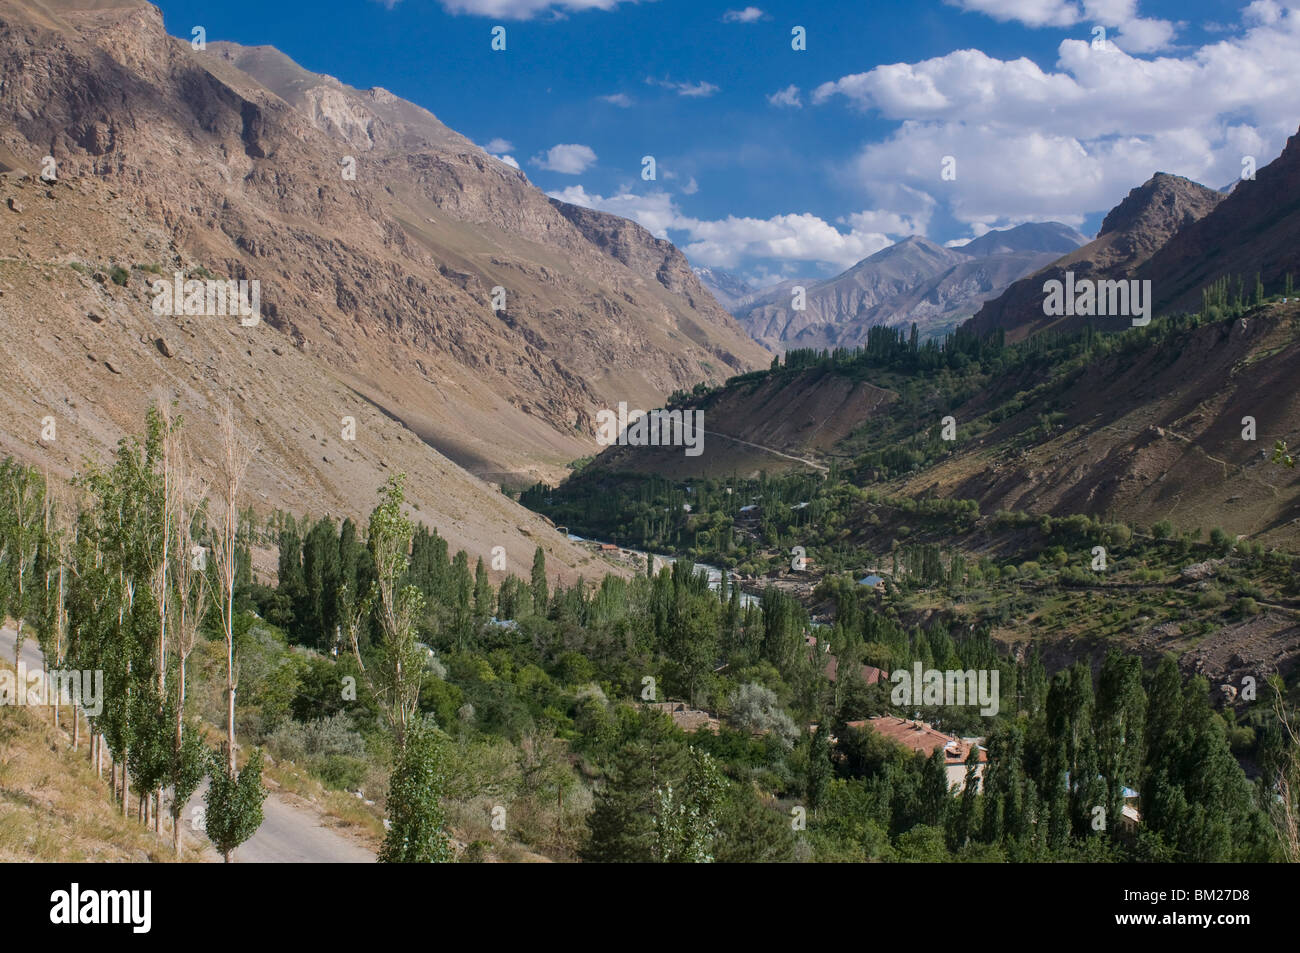 Valley with trees and bushes, Khorog, Tajikistan, Central Asia - Stock Image